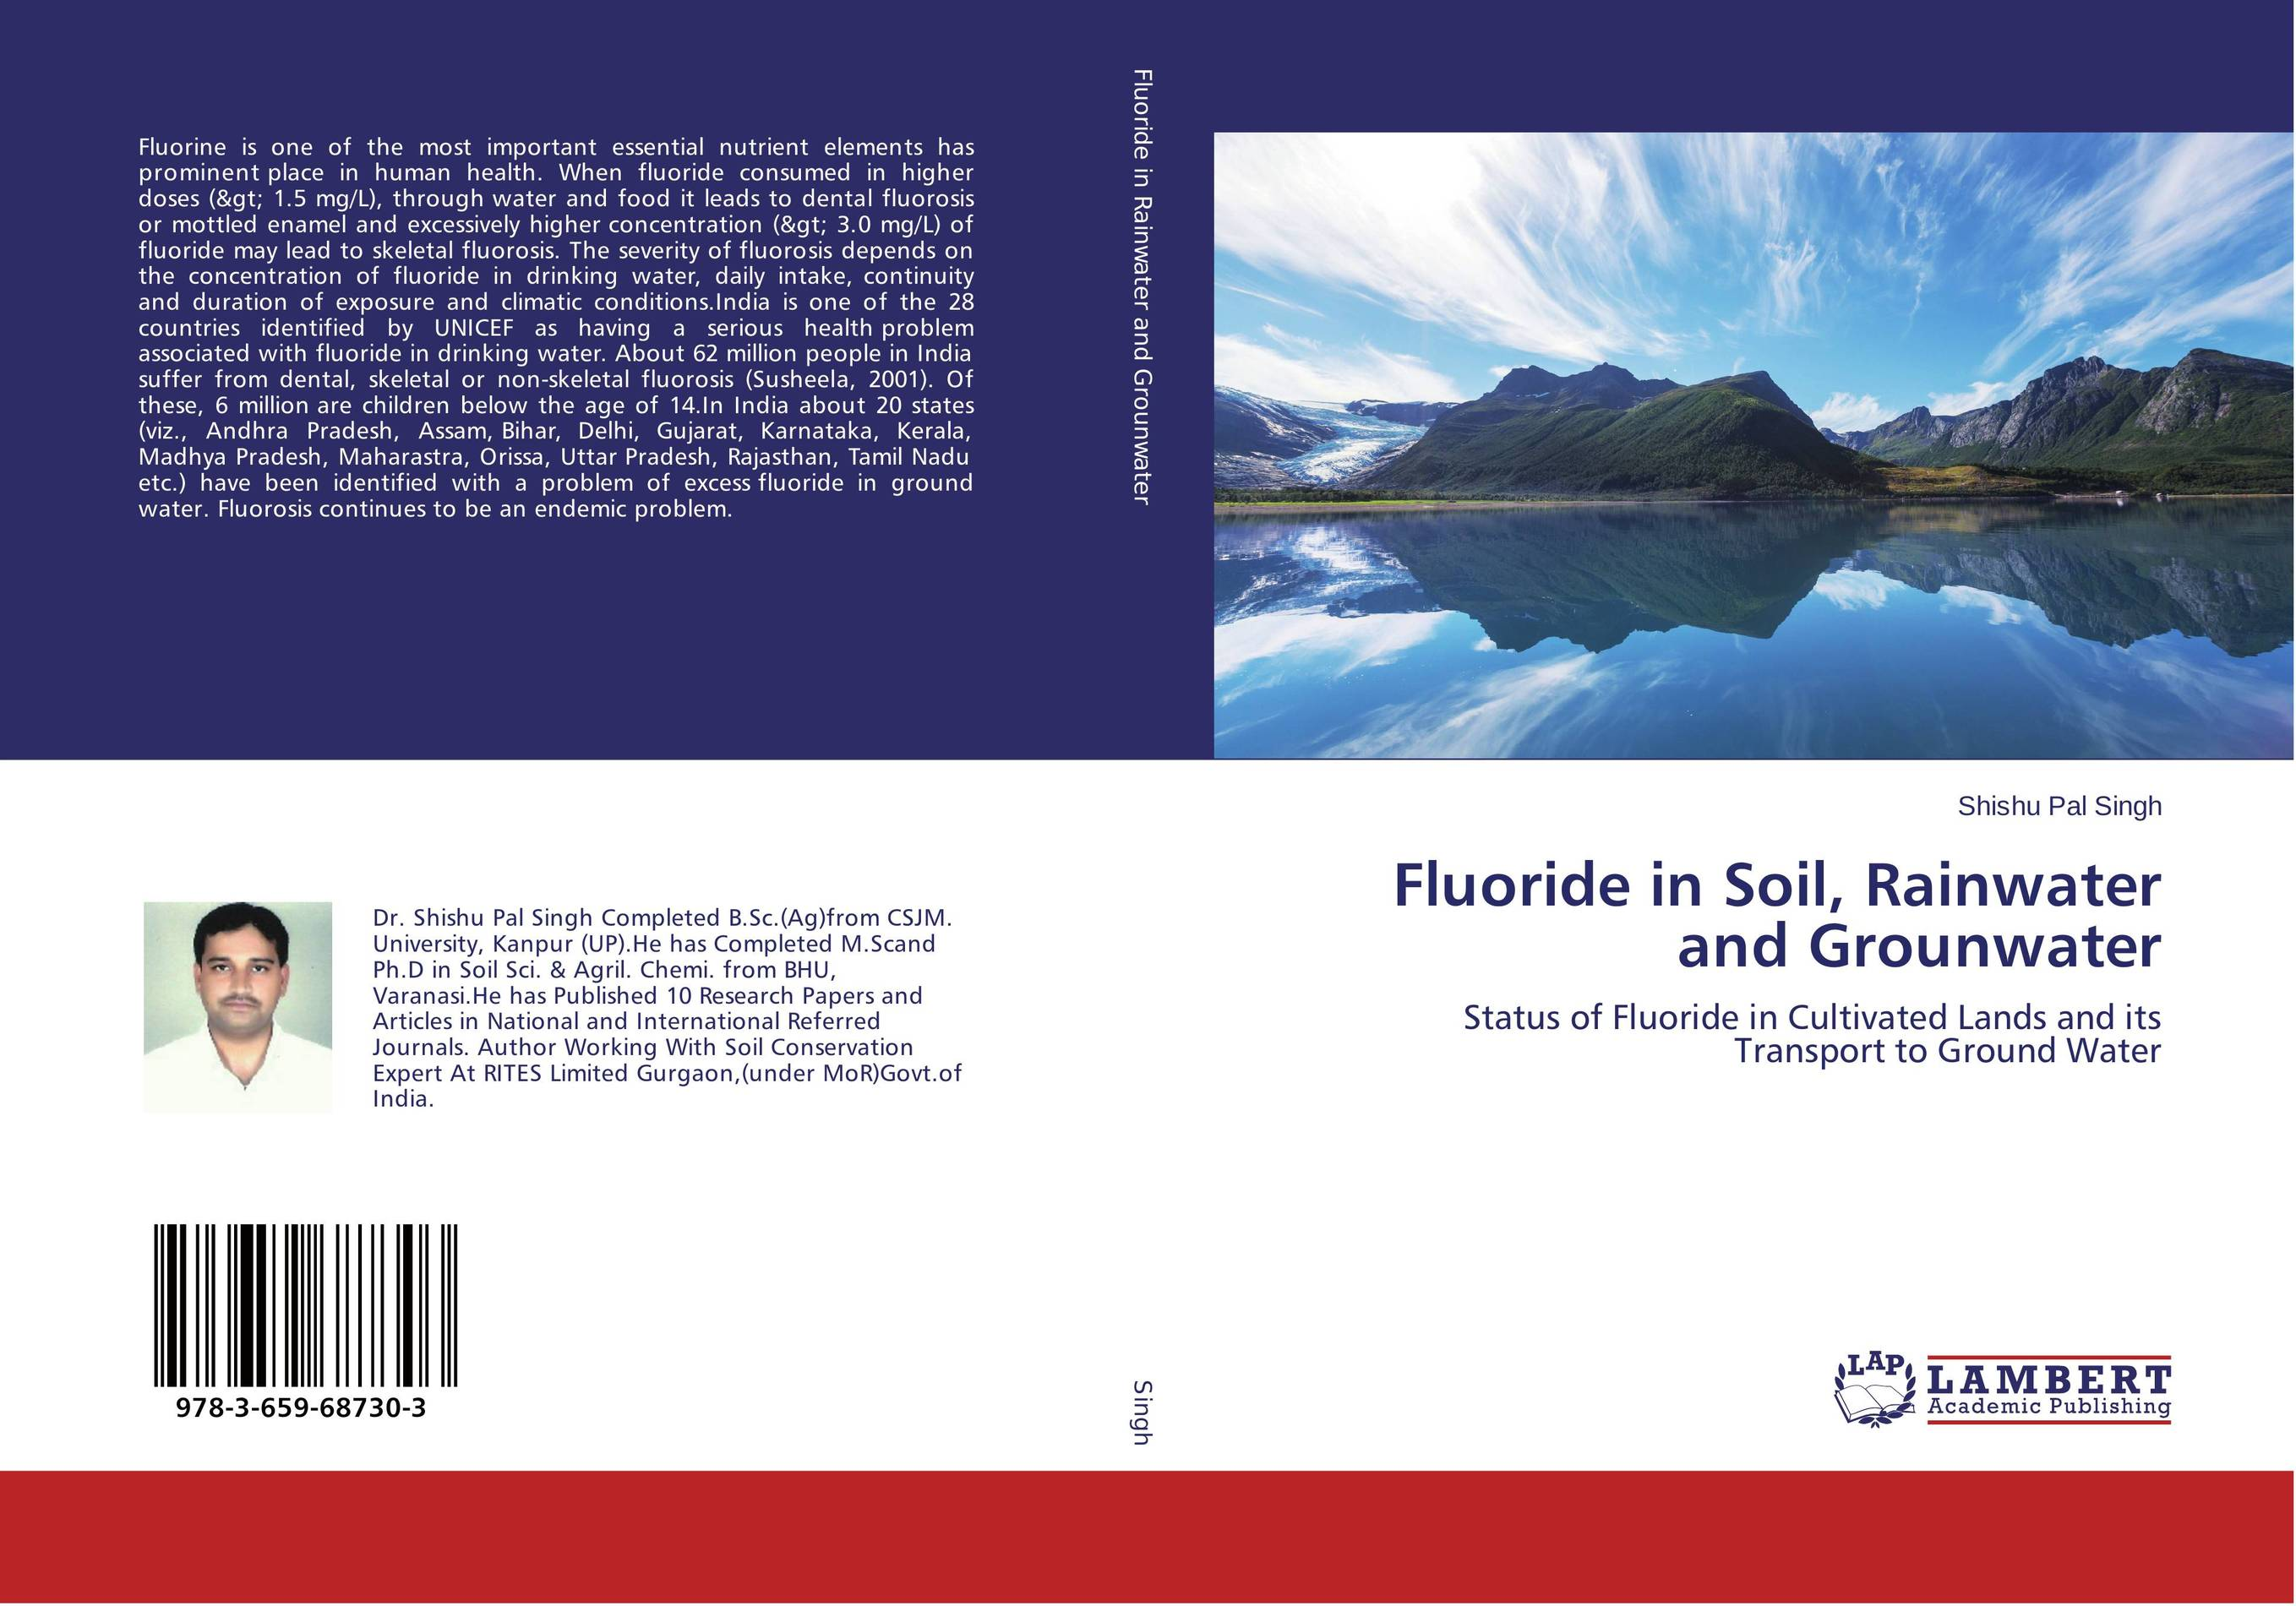 Fluoride in Soil, Rainwater and Grounwater fluoride rechargeability